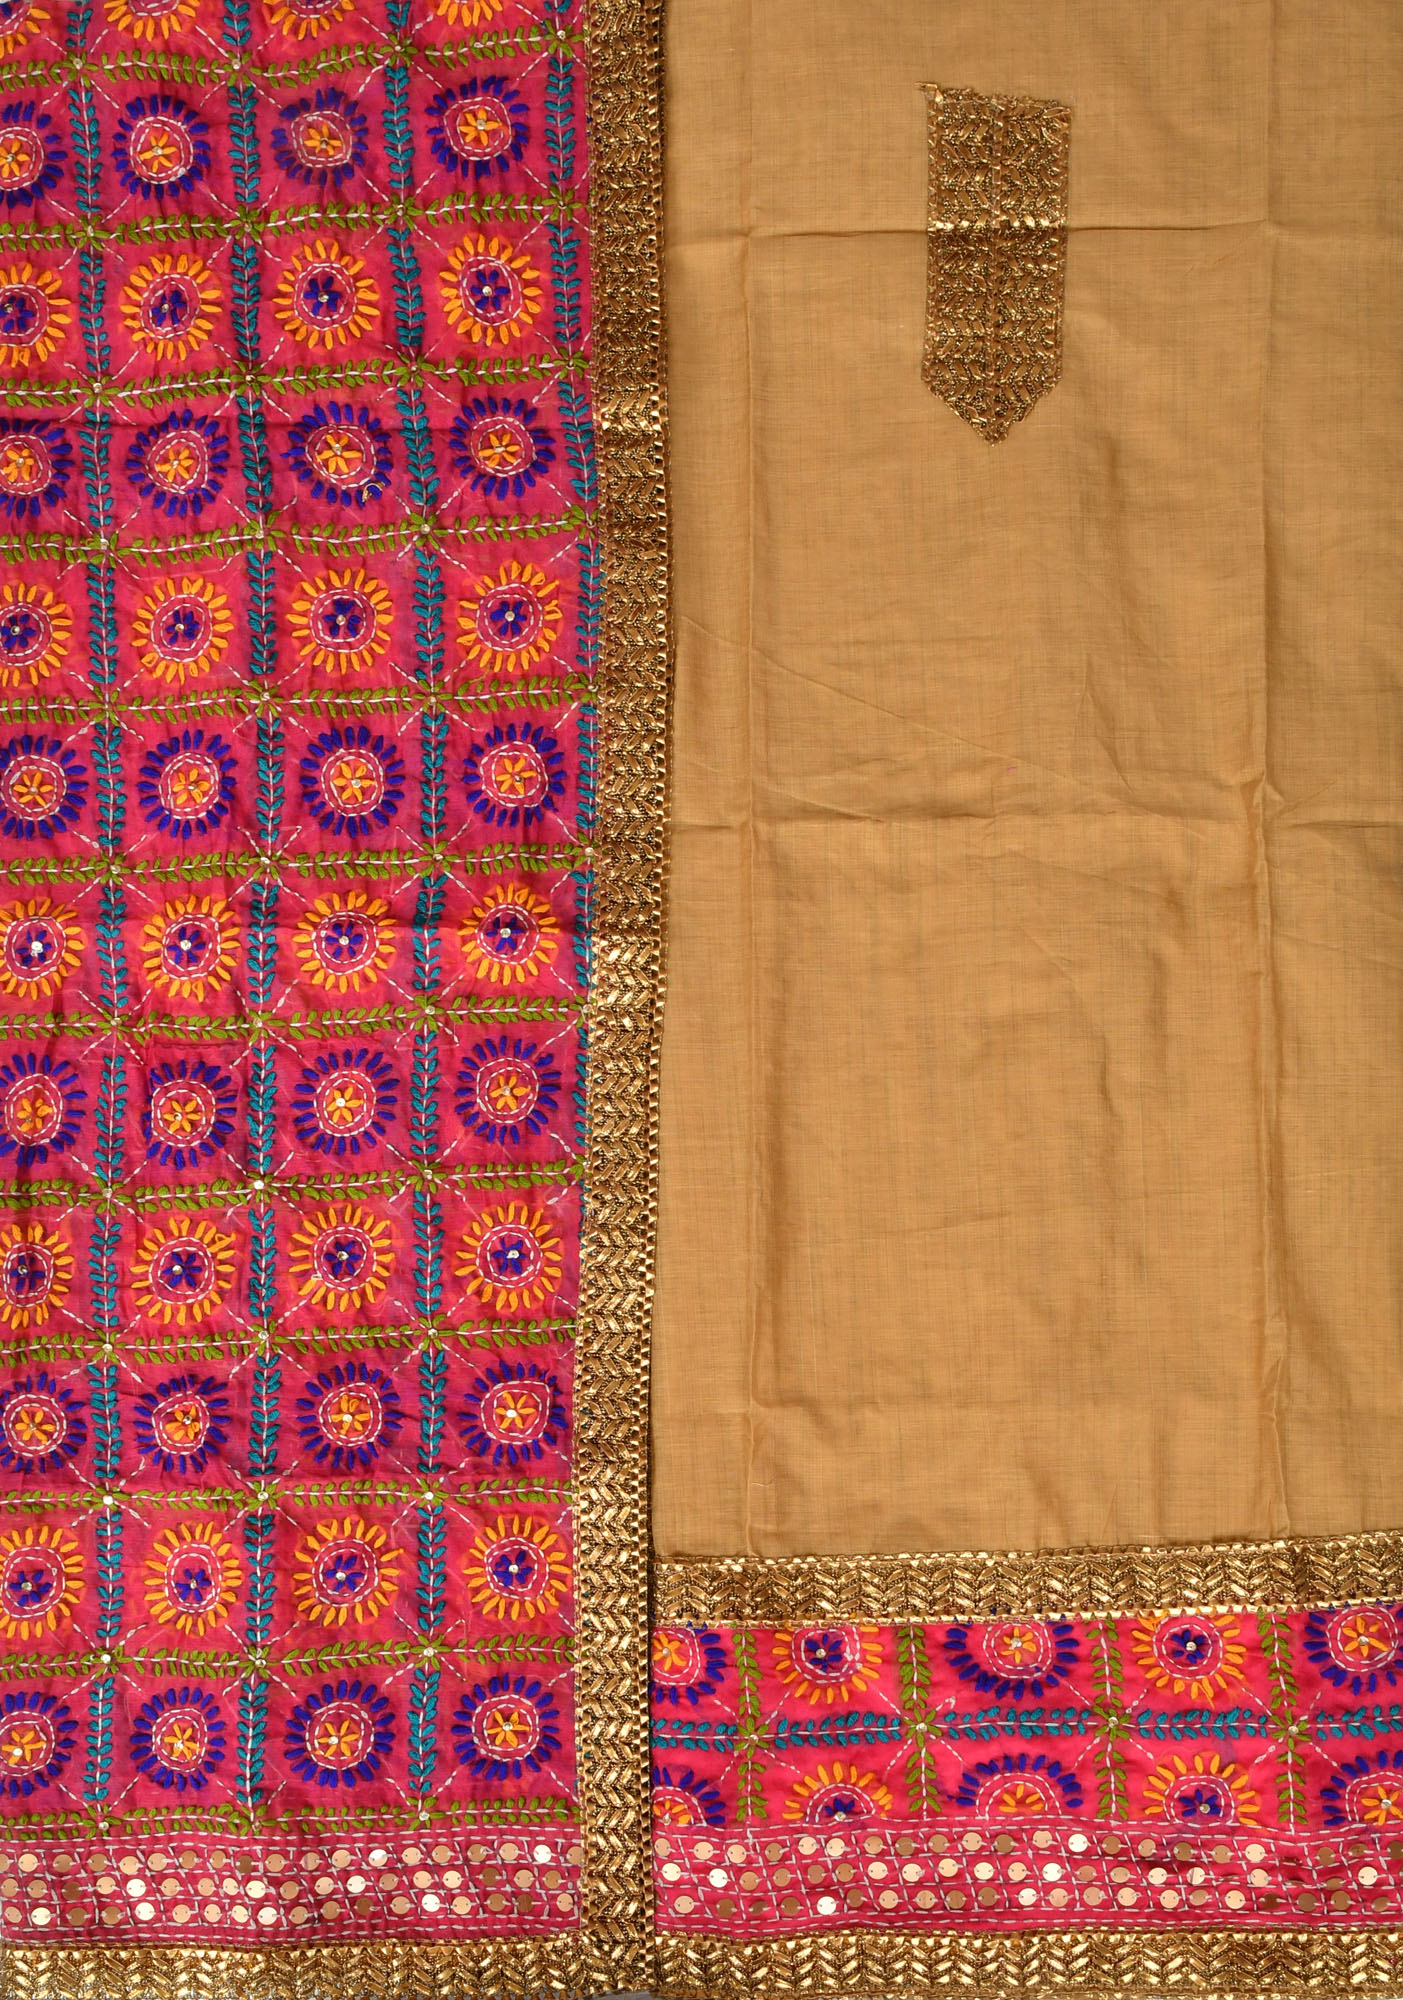 Phulkari salwar kameez fabric from punjab with hand